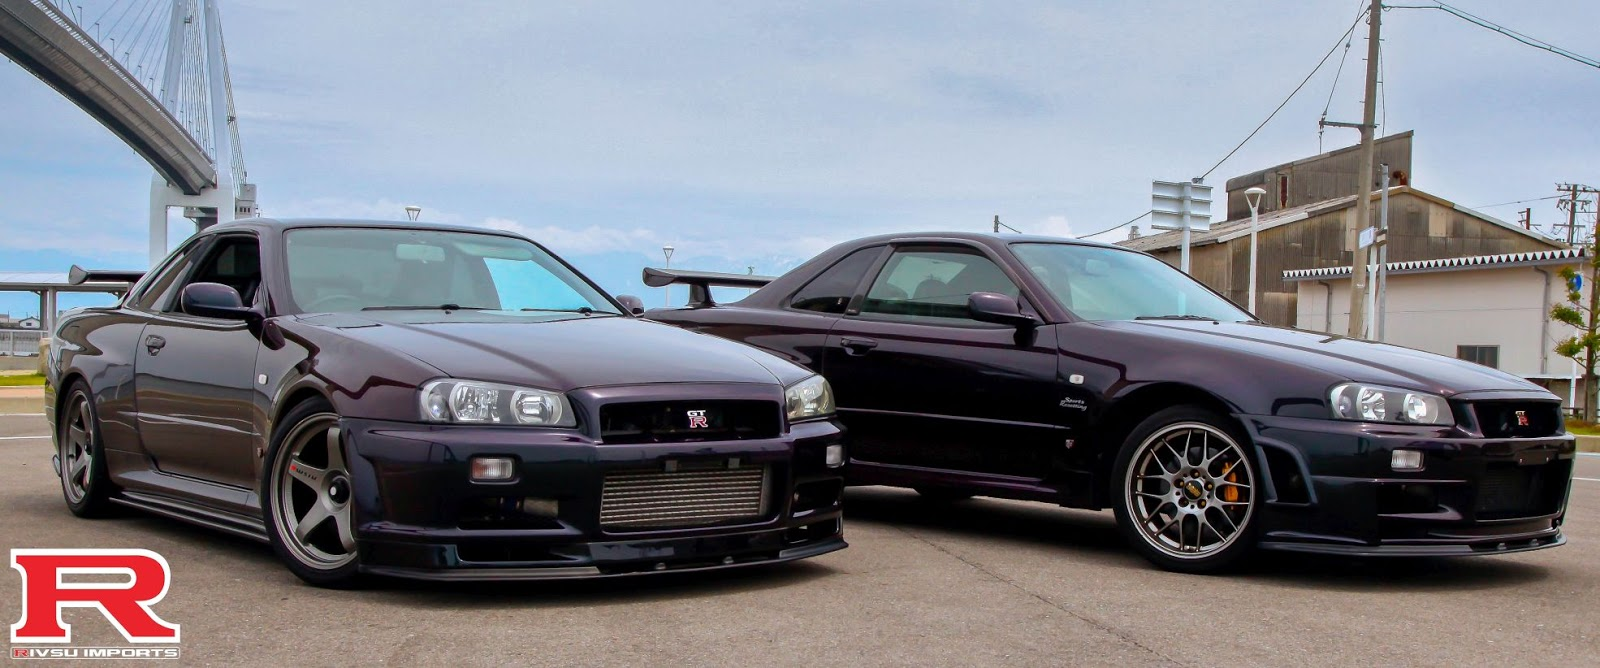 Moon Shot The Race To Legally Import R34 Skylines To The Us 23gt